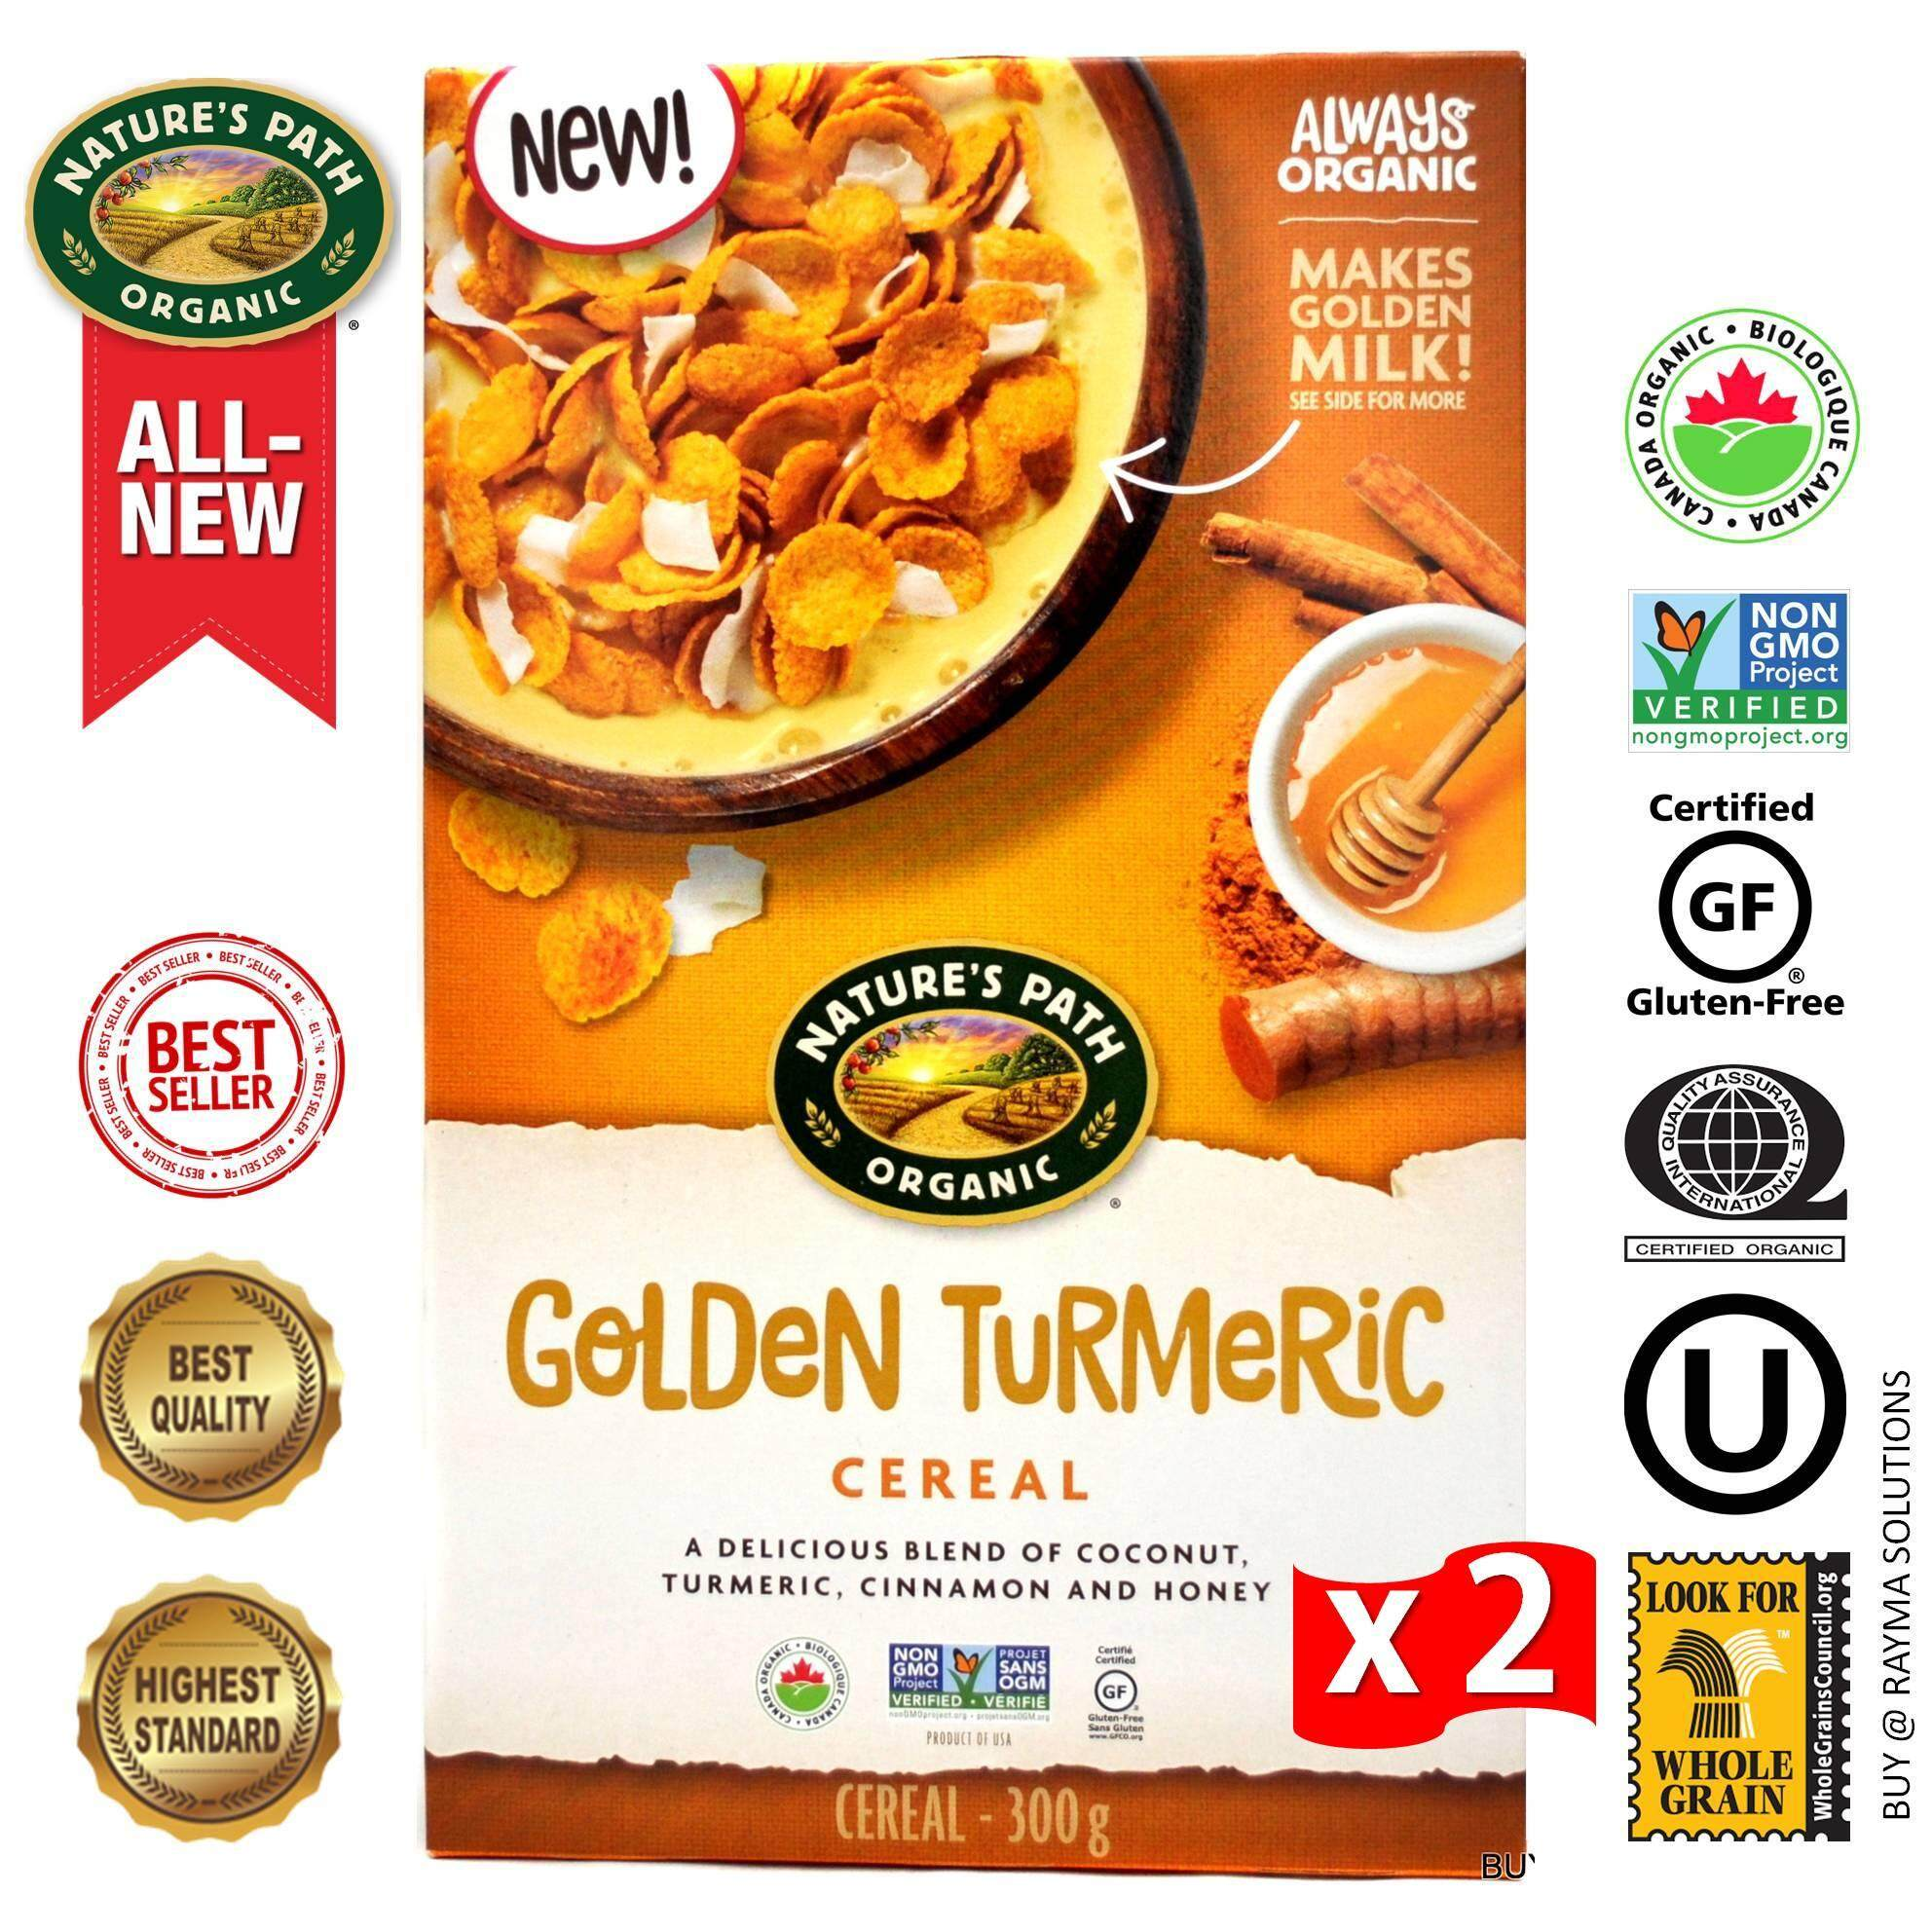 [$AVE More!] NATURE'S PATH ORGANIC Golden Turmeric Cereal, Gluten Free, 300g - Twin Pack